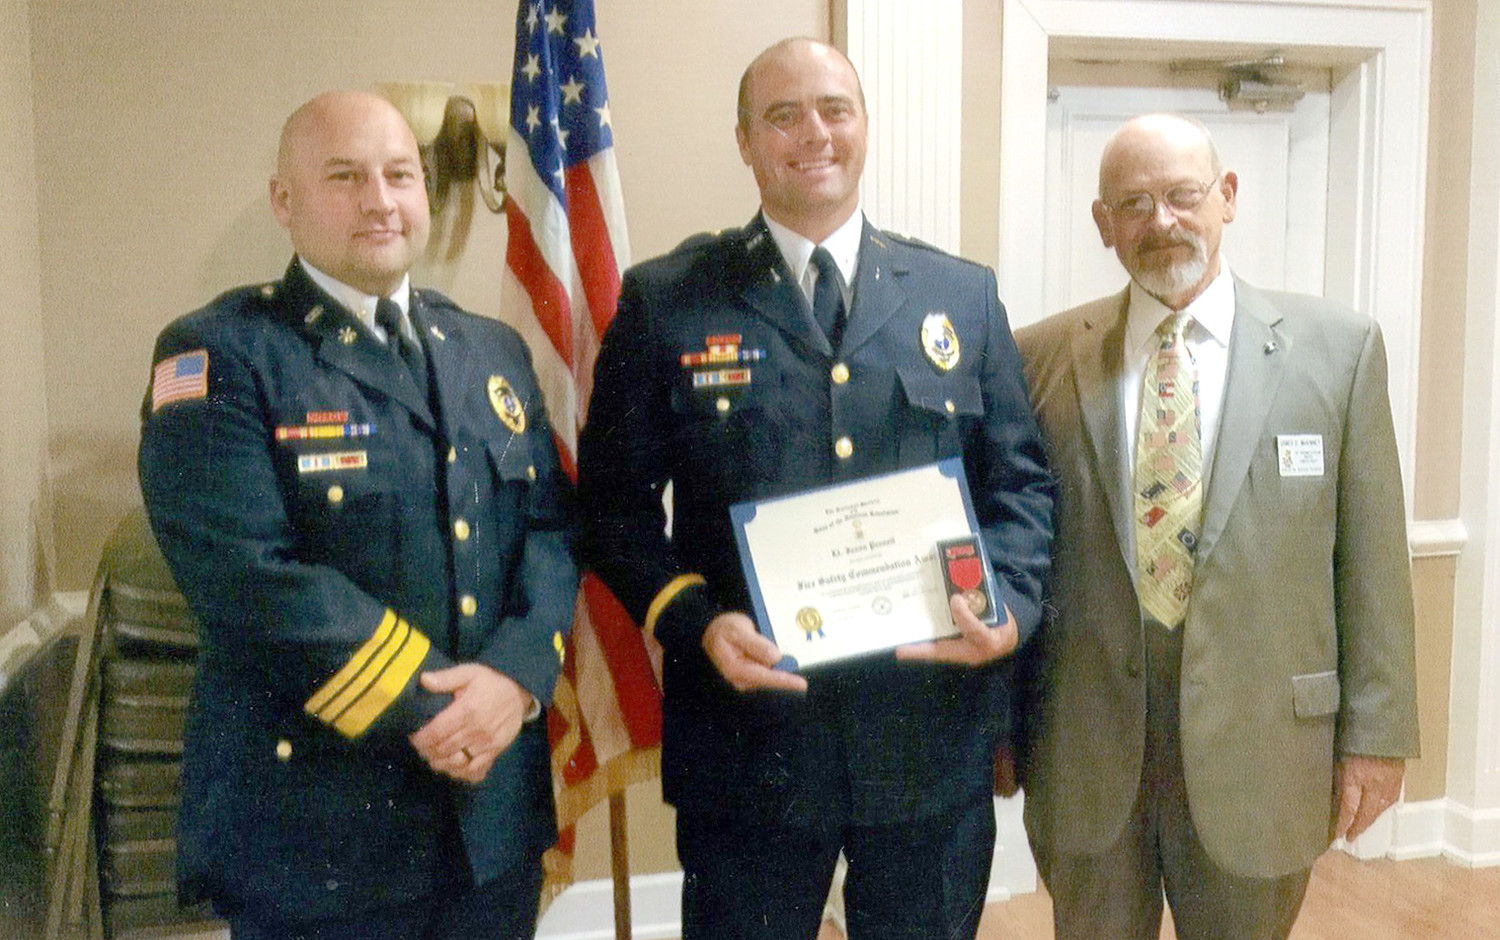 LT. JASON PENNELL, center, was recipient of the Col. Benjamin Cleveland Chapter of the Sons of the American Revolution Law Enforcement Commendation.  A member of the Cleveland Fire Department, Pennell was presented the award by Battalion Chief Josh Ensley and First Vice President Jim McKinney.